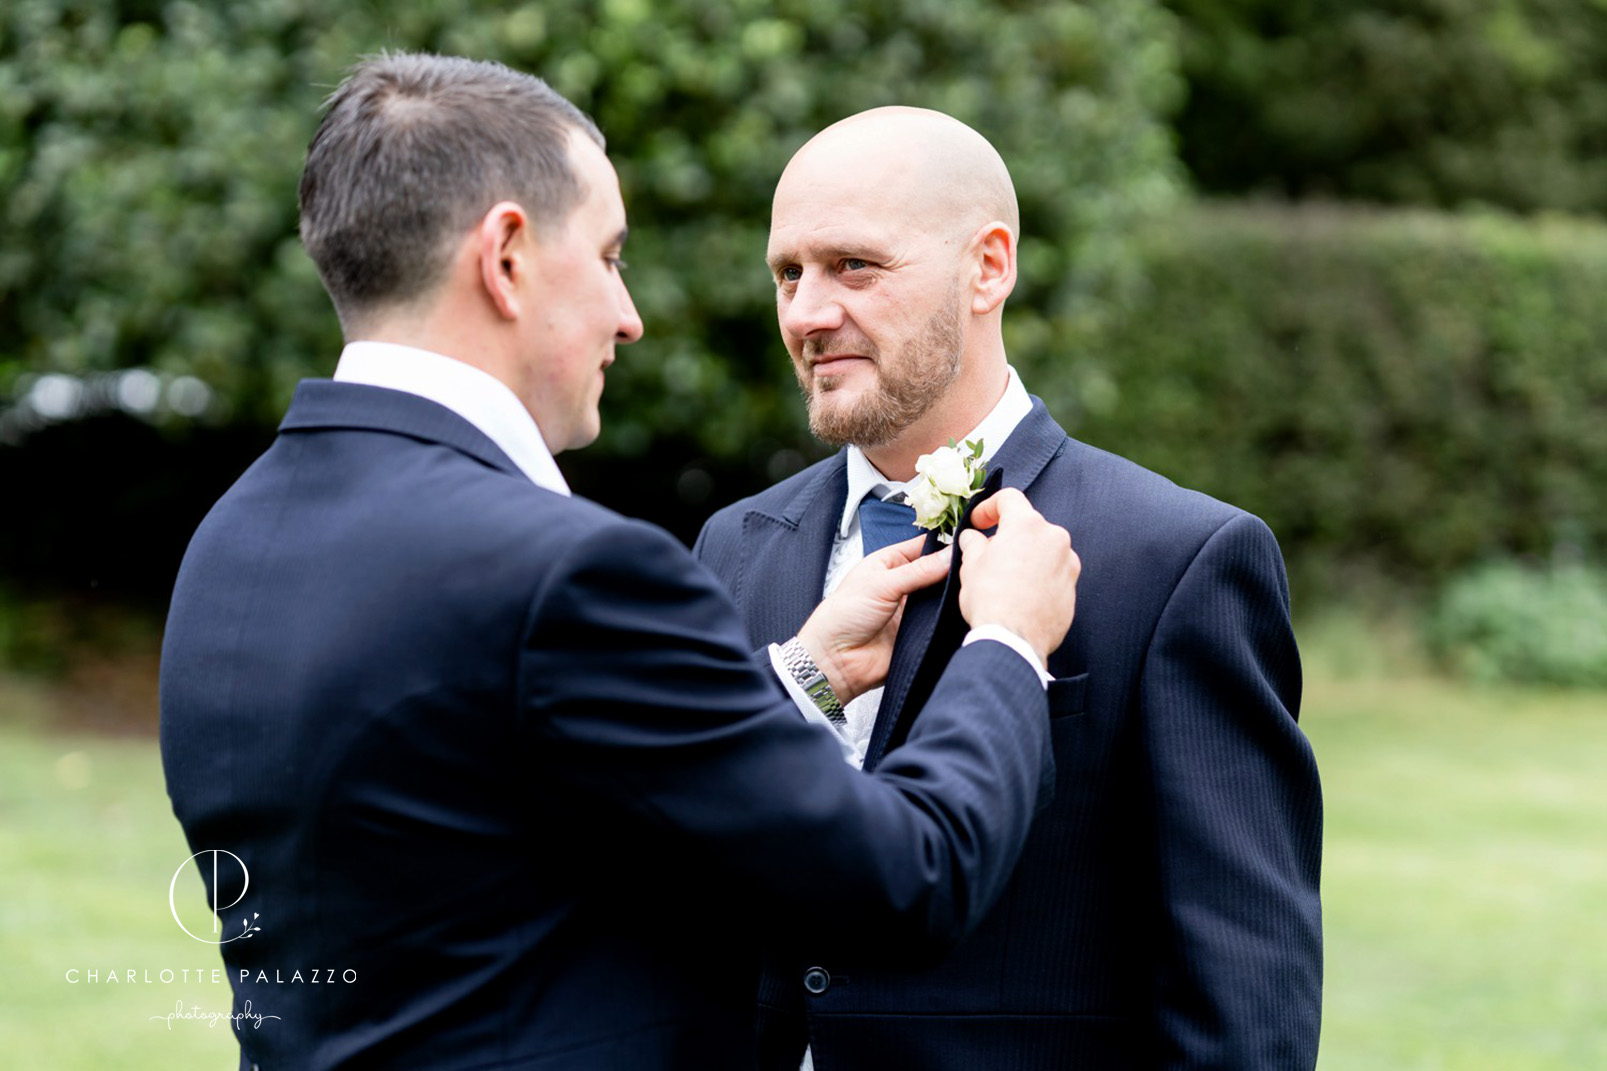 Fine_art_wedding_Photography_Cheshire_Wedding_Venues_The_Mere_Resort_0009.jpg